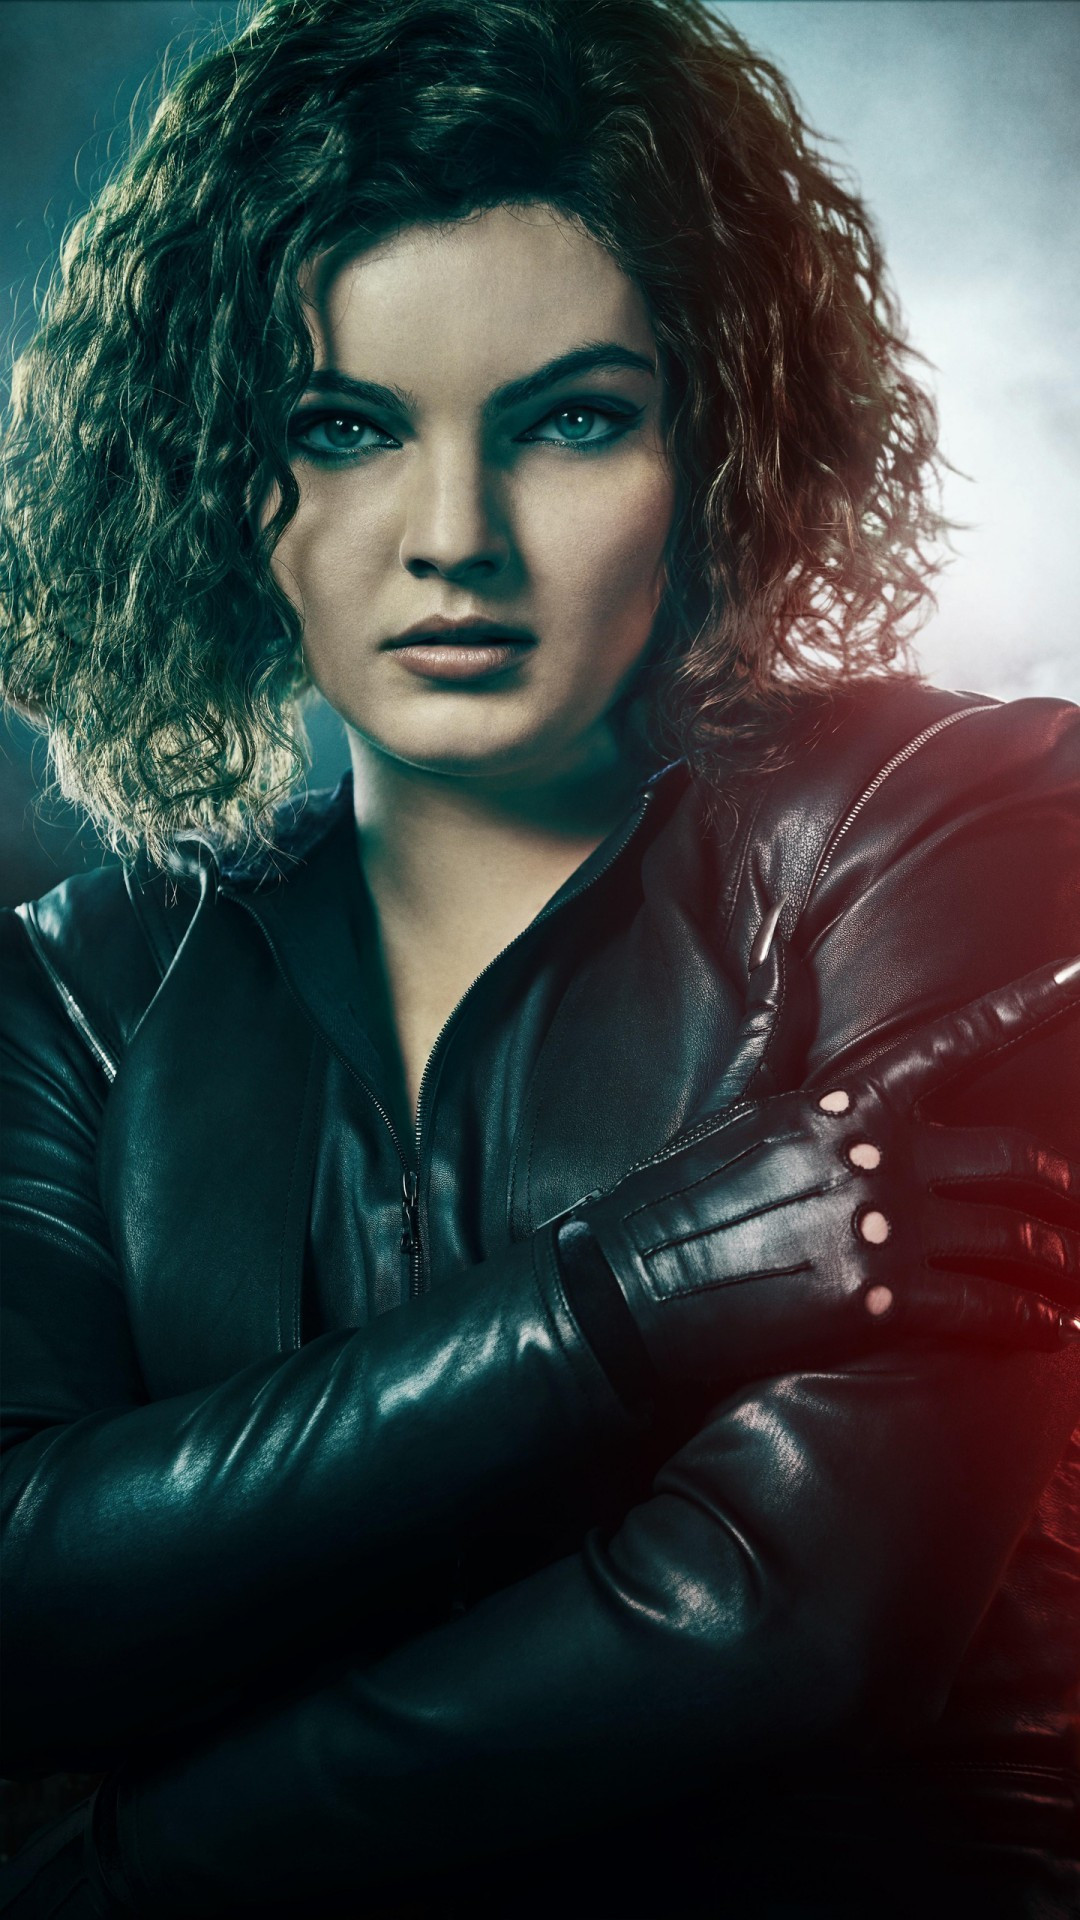 Free Camren Bicondova in Gotham Season 5 phone wallpaper by acrowth